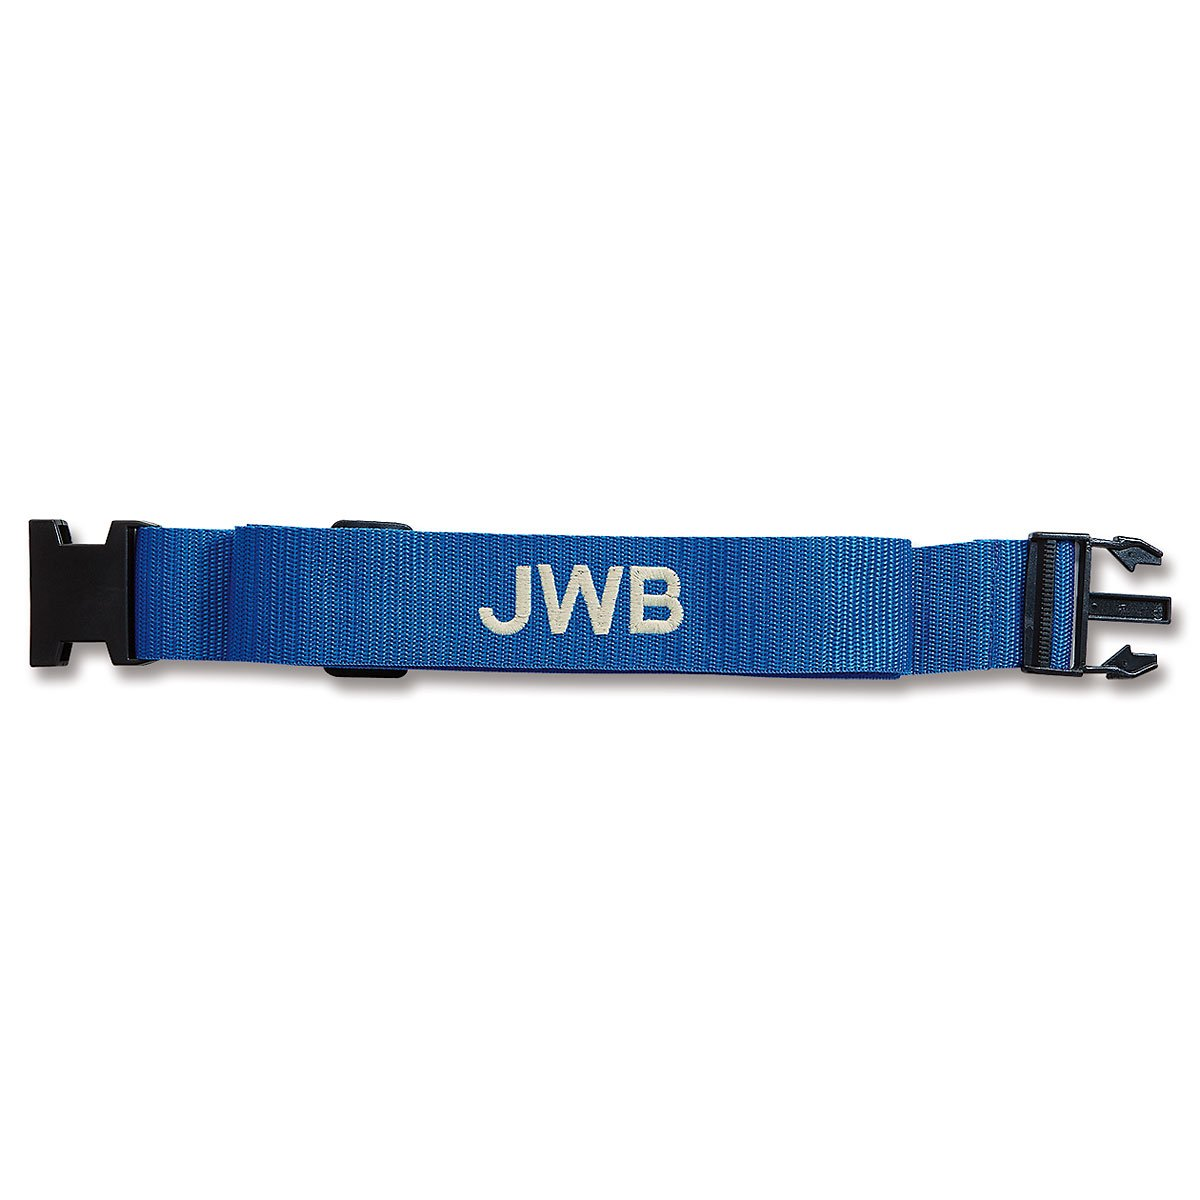 Personalized Blue Luggage Strap - 2'' W woven strap adjusts from 35'' to 64'' L